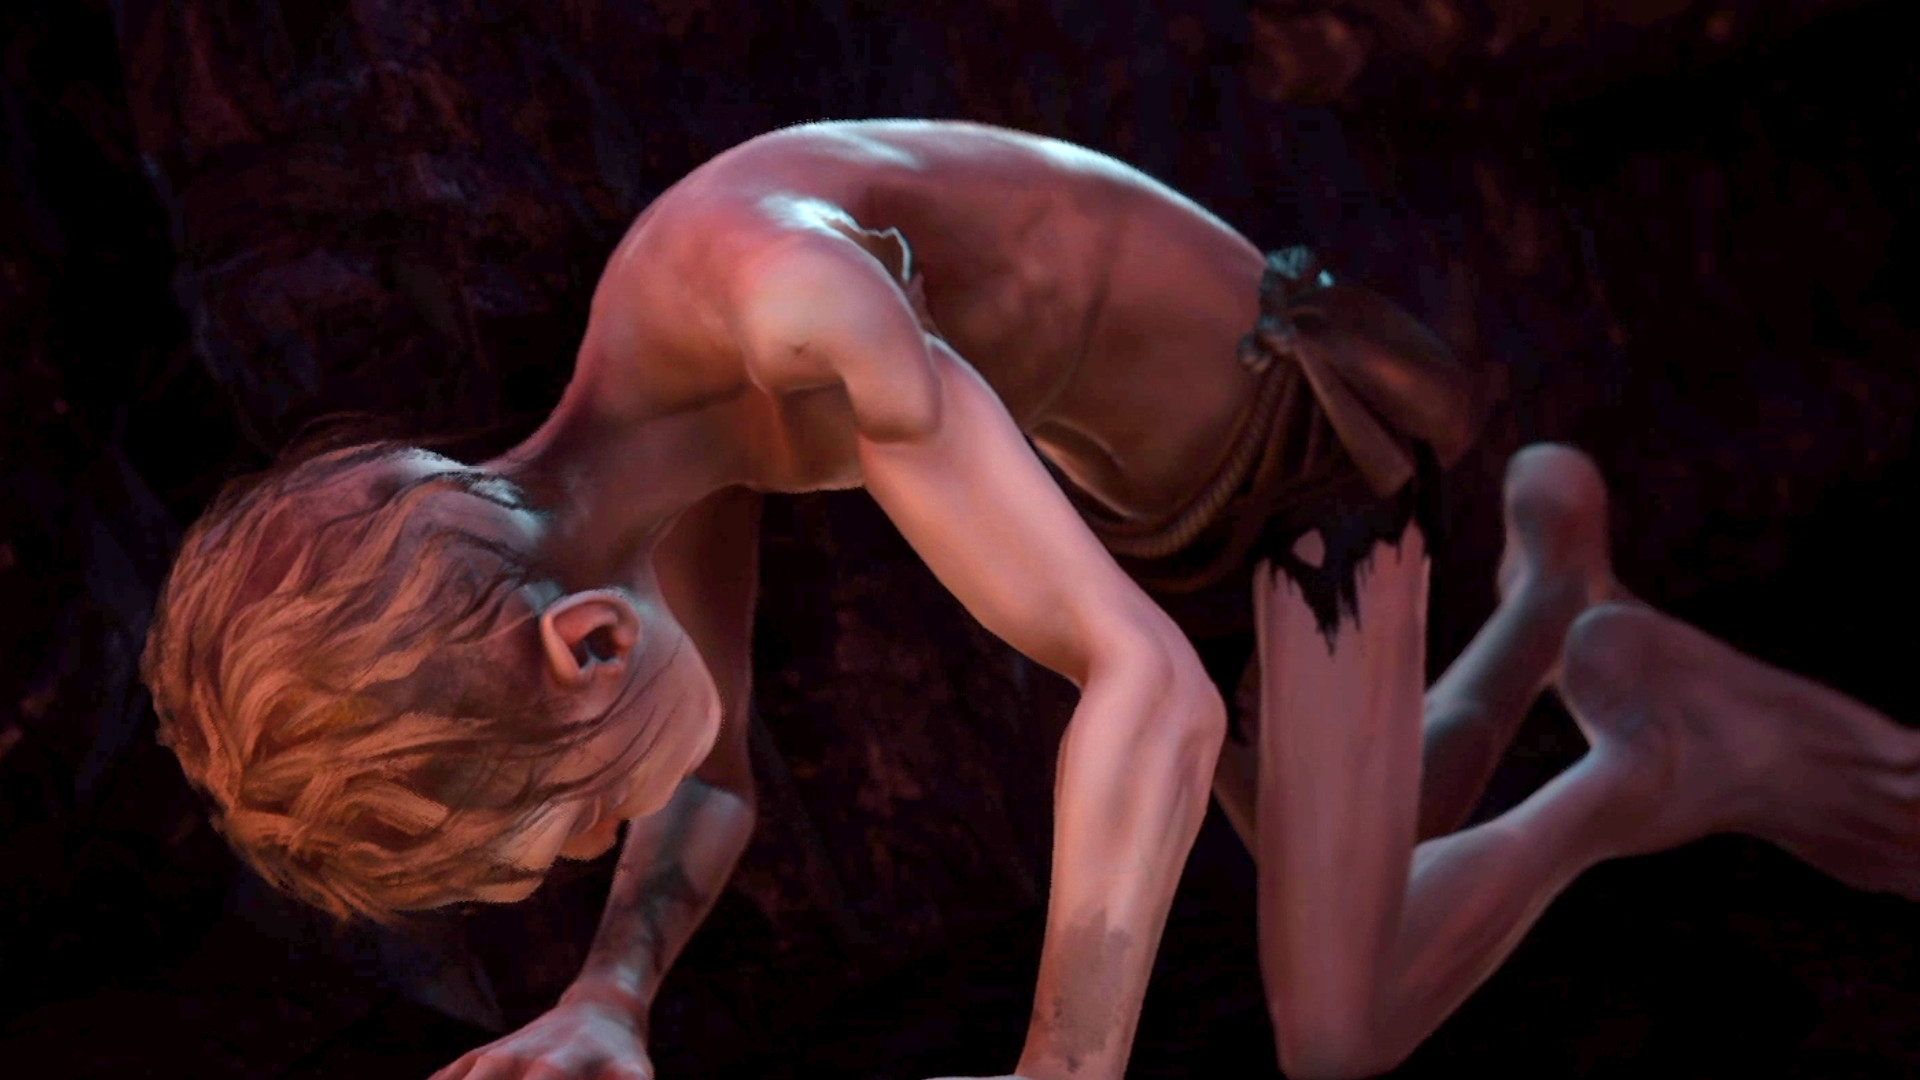 Lord of the Rings: Gollum reveals its first in-game footage